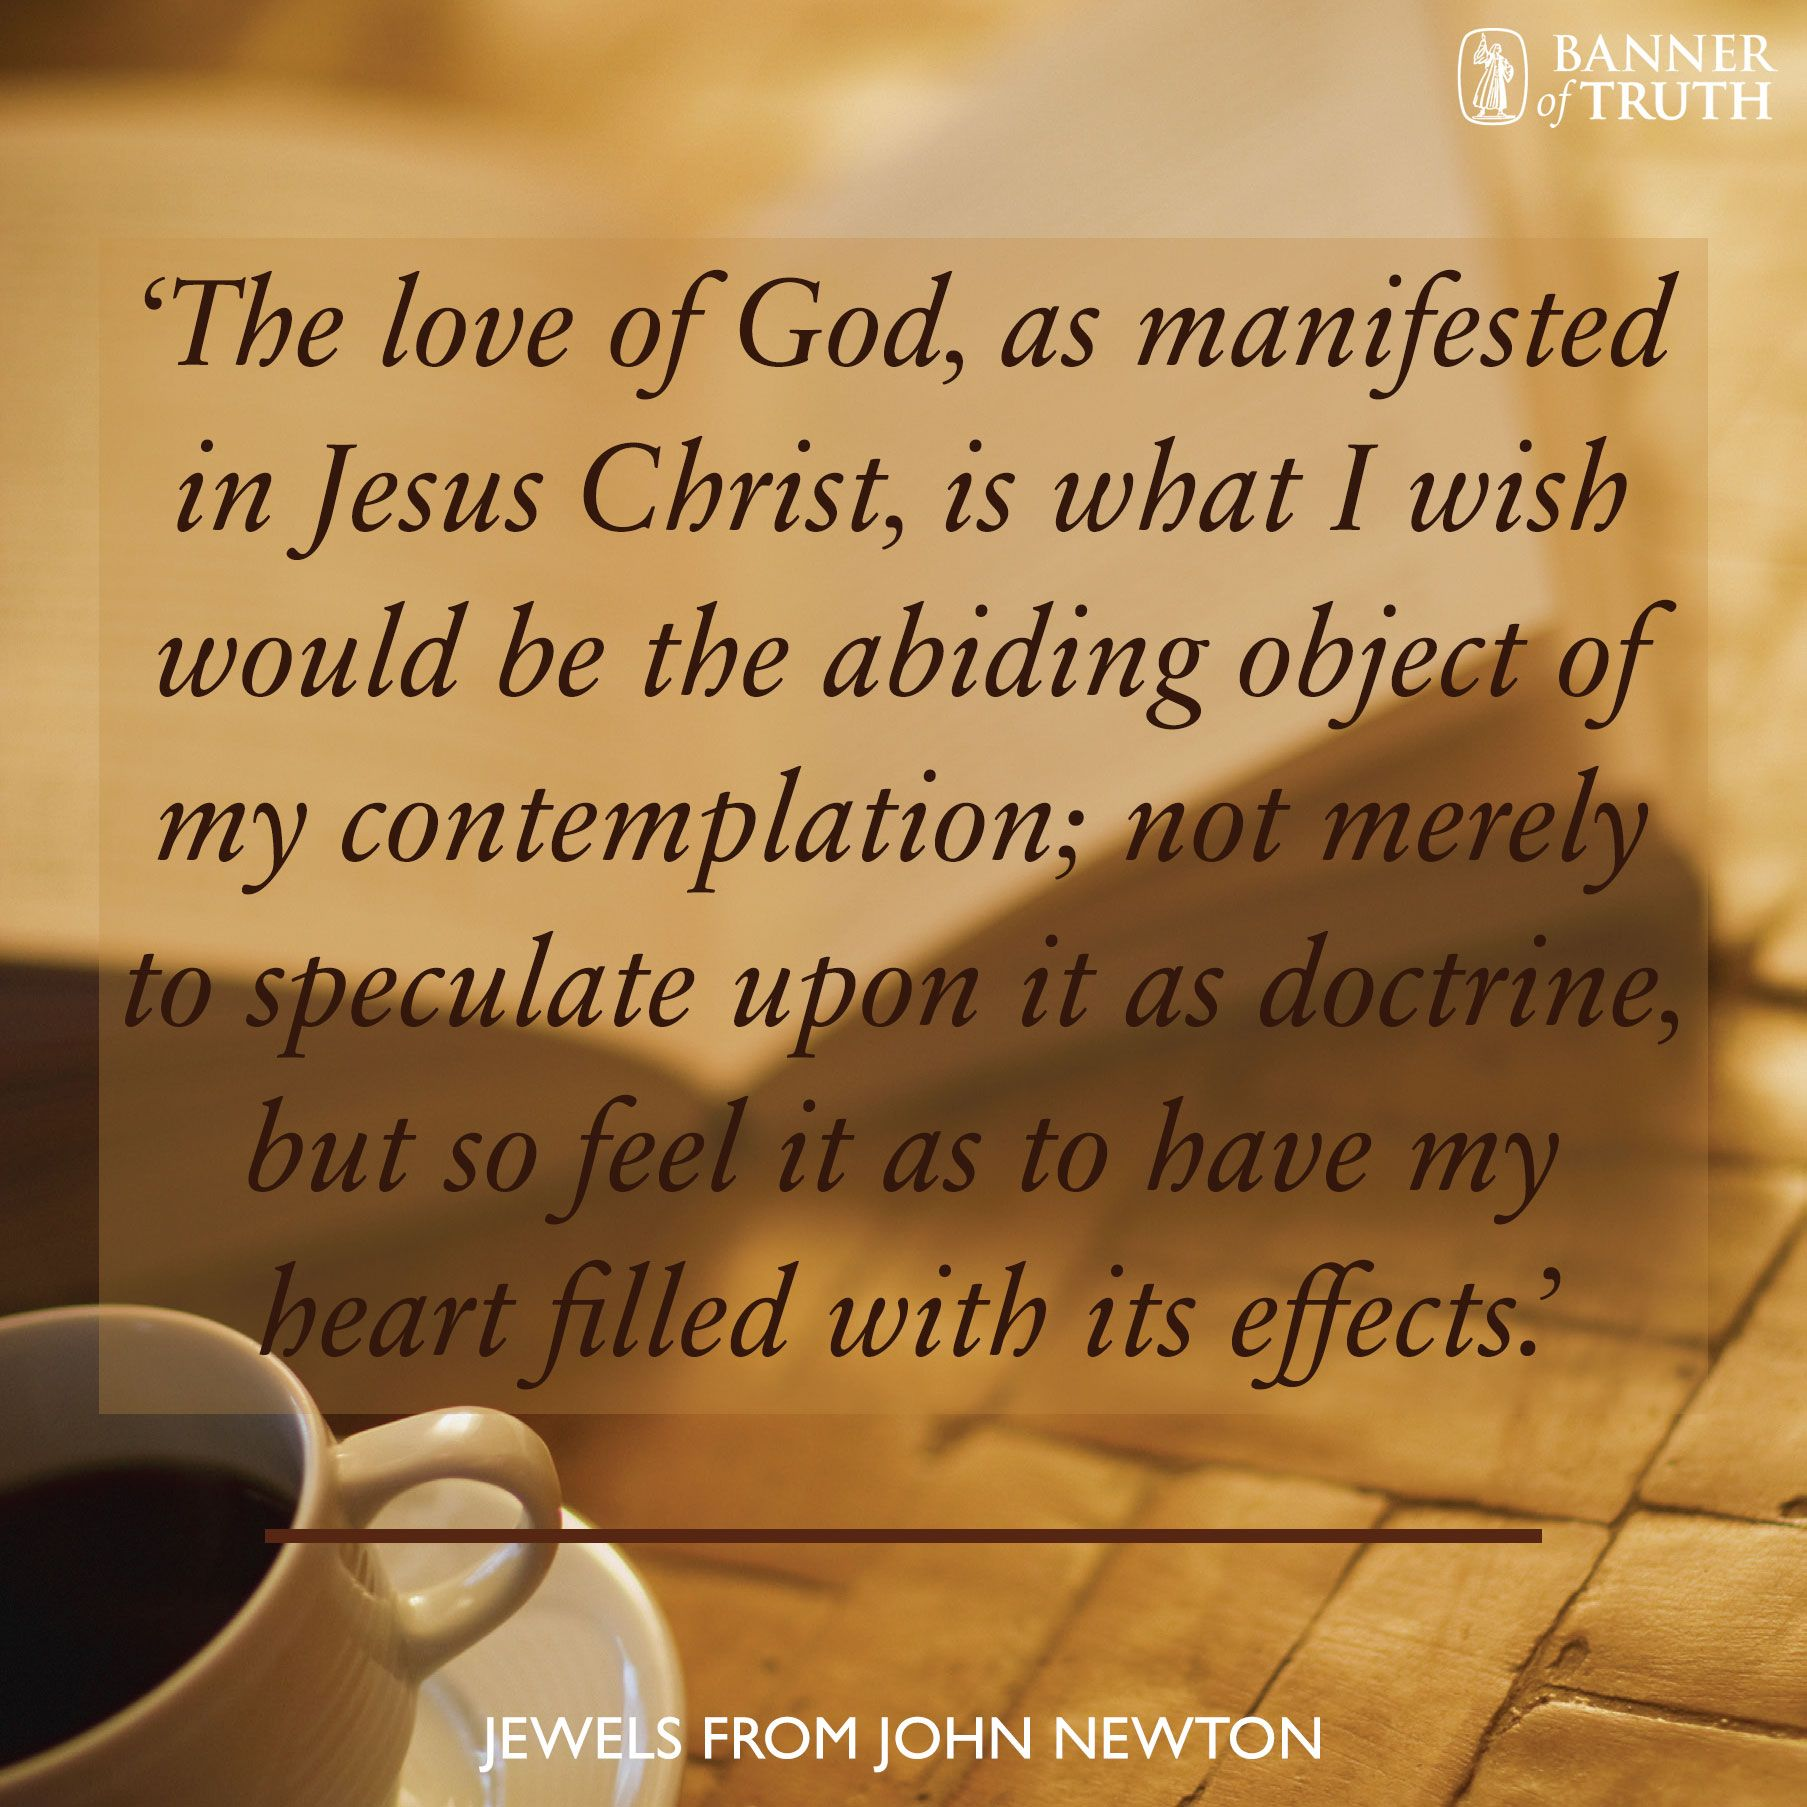 Jesus Quotes About Love The Love Of God As Manifested In Jesus Christ'  Banner